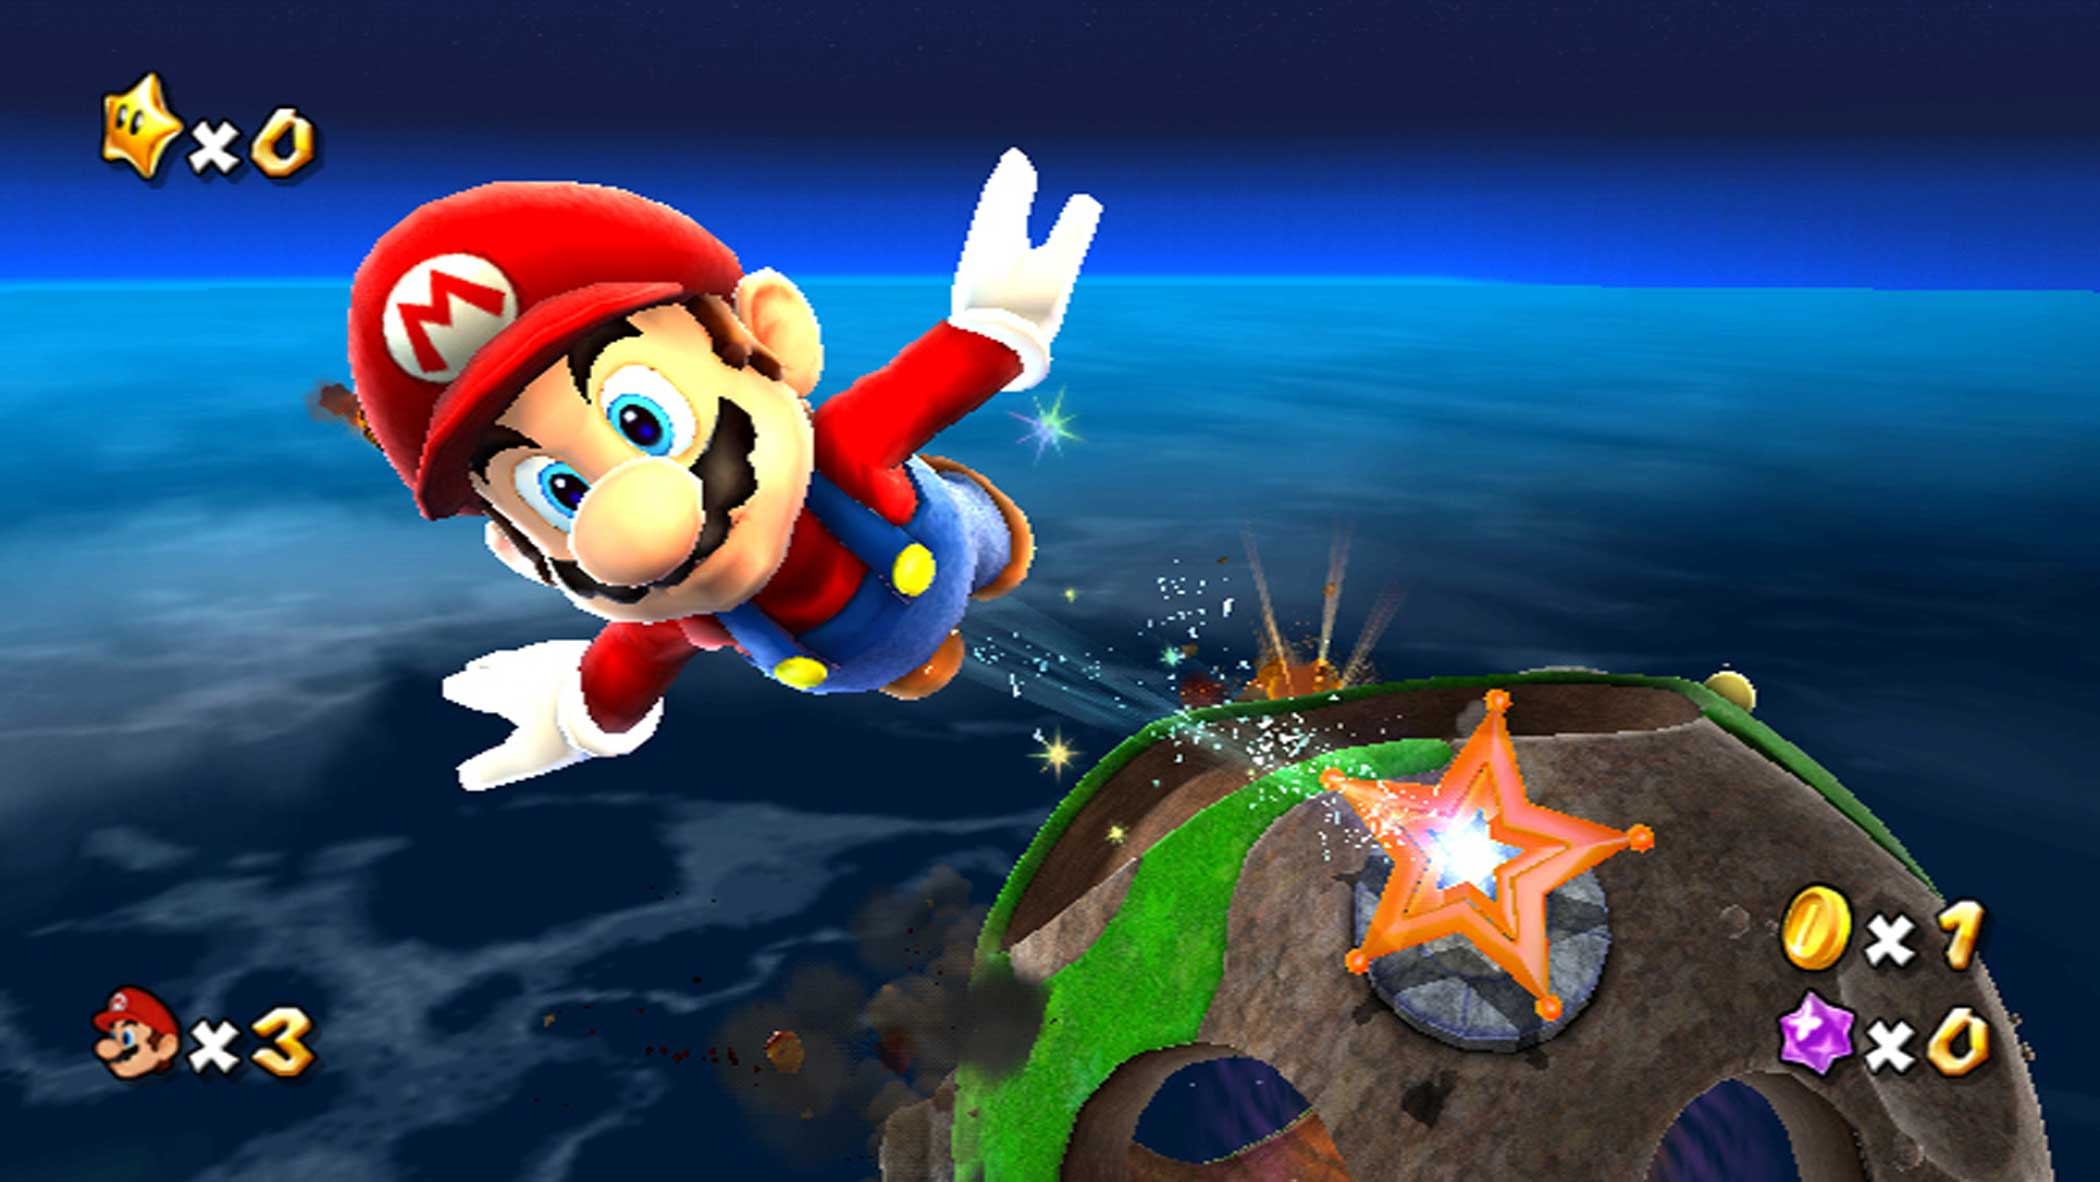 2007: Super Mario Galaxy                                                              Imagine the planetoids in Antoine de Saint-Exupéry's The Little Prince with Super Mario 64's 3D controls meets all sorts of gravitational zaniness, and you get Super Mario Galaxy, Miyamoto protégé Koichi Hayashida's ingenious means of sending Mario on an interstellar romp.